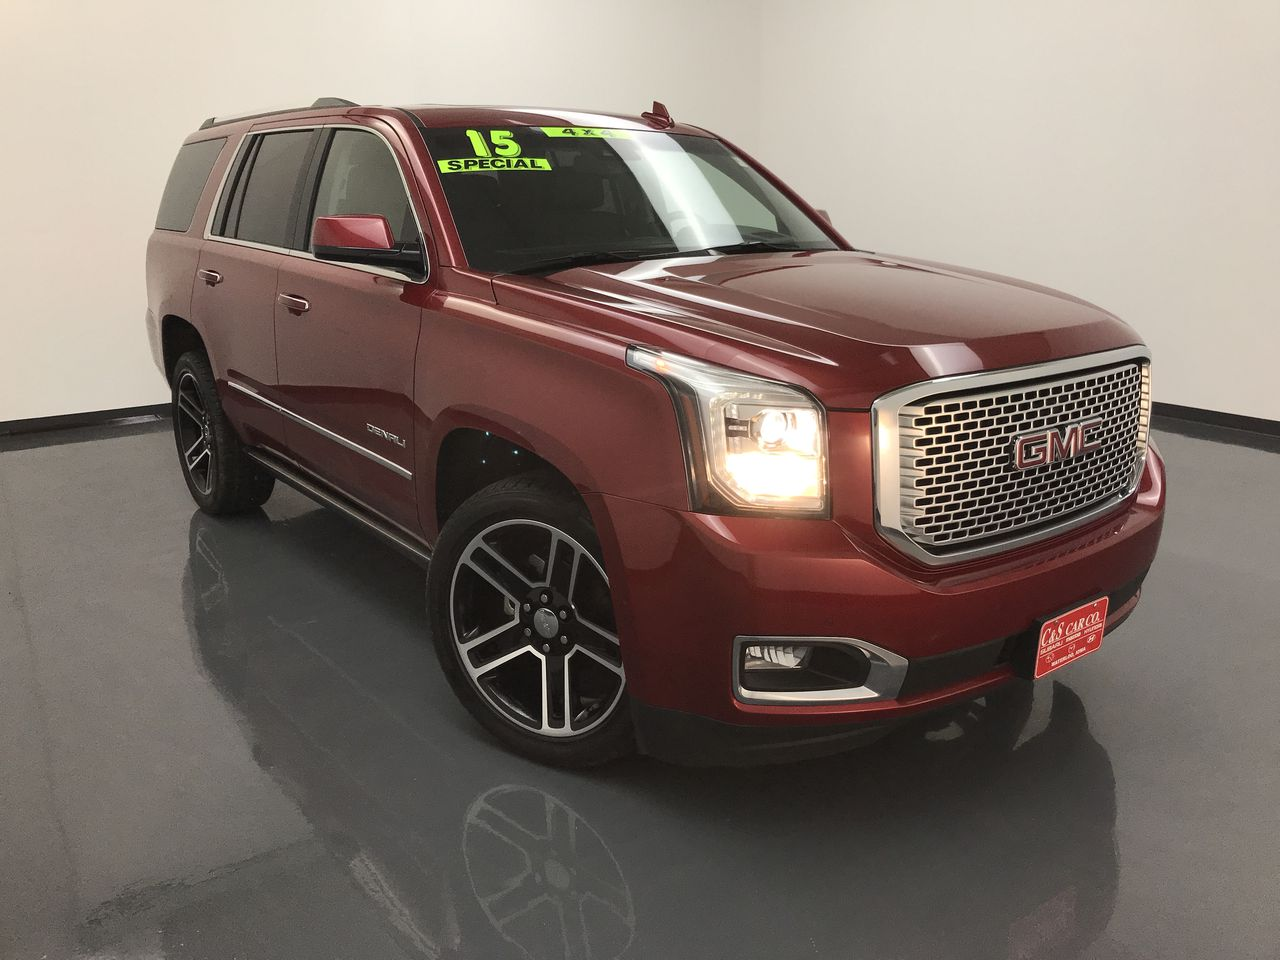 2015 Gmc Yukon Denali Awd Stock Sb7047a Waterloo Ia Thumbnail C S Car Company